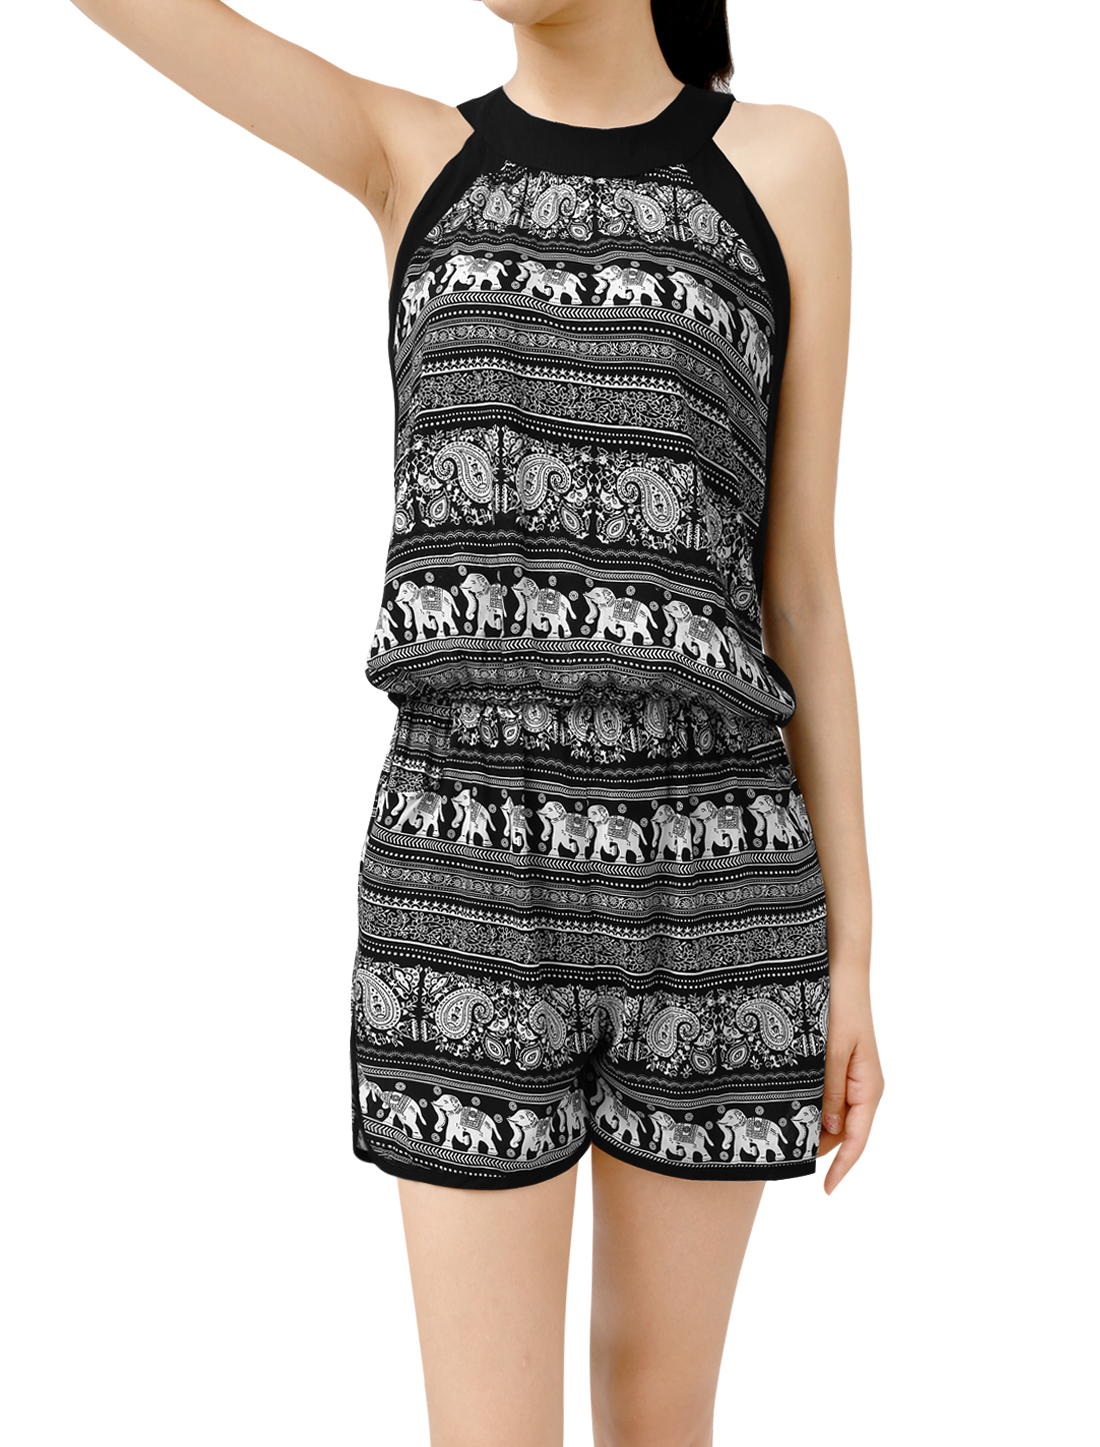 Ladies Sleeveless Novelty Print Pockets Rompers Black XL